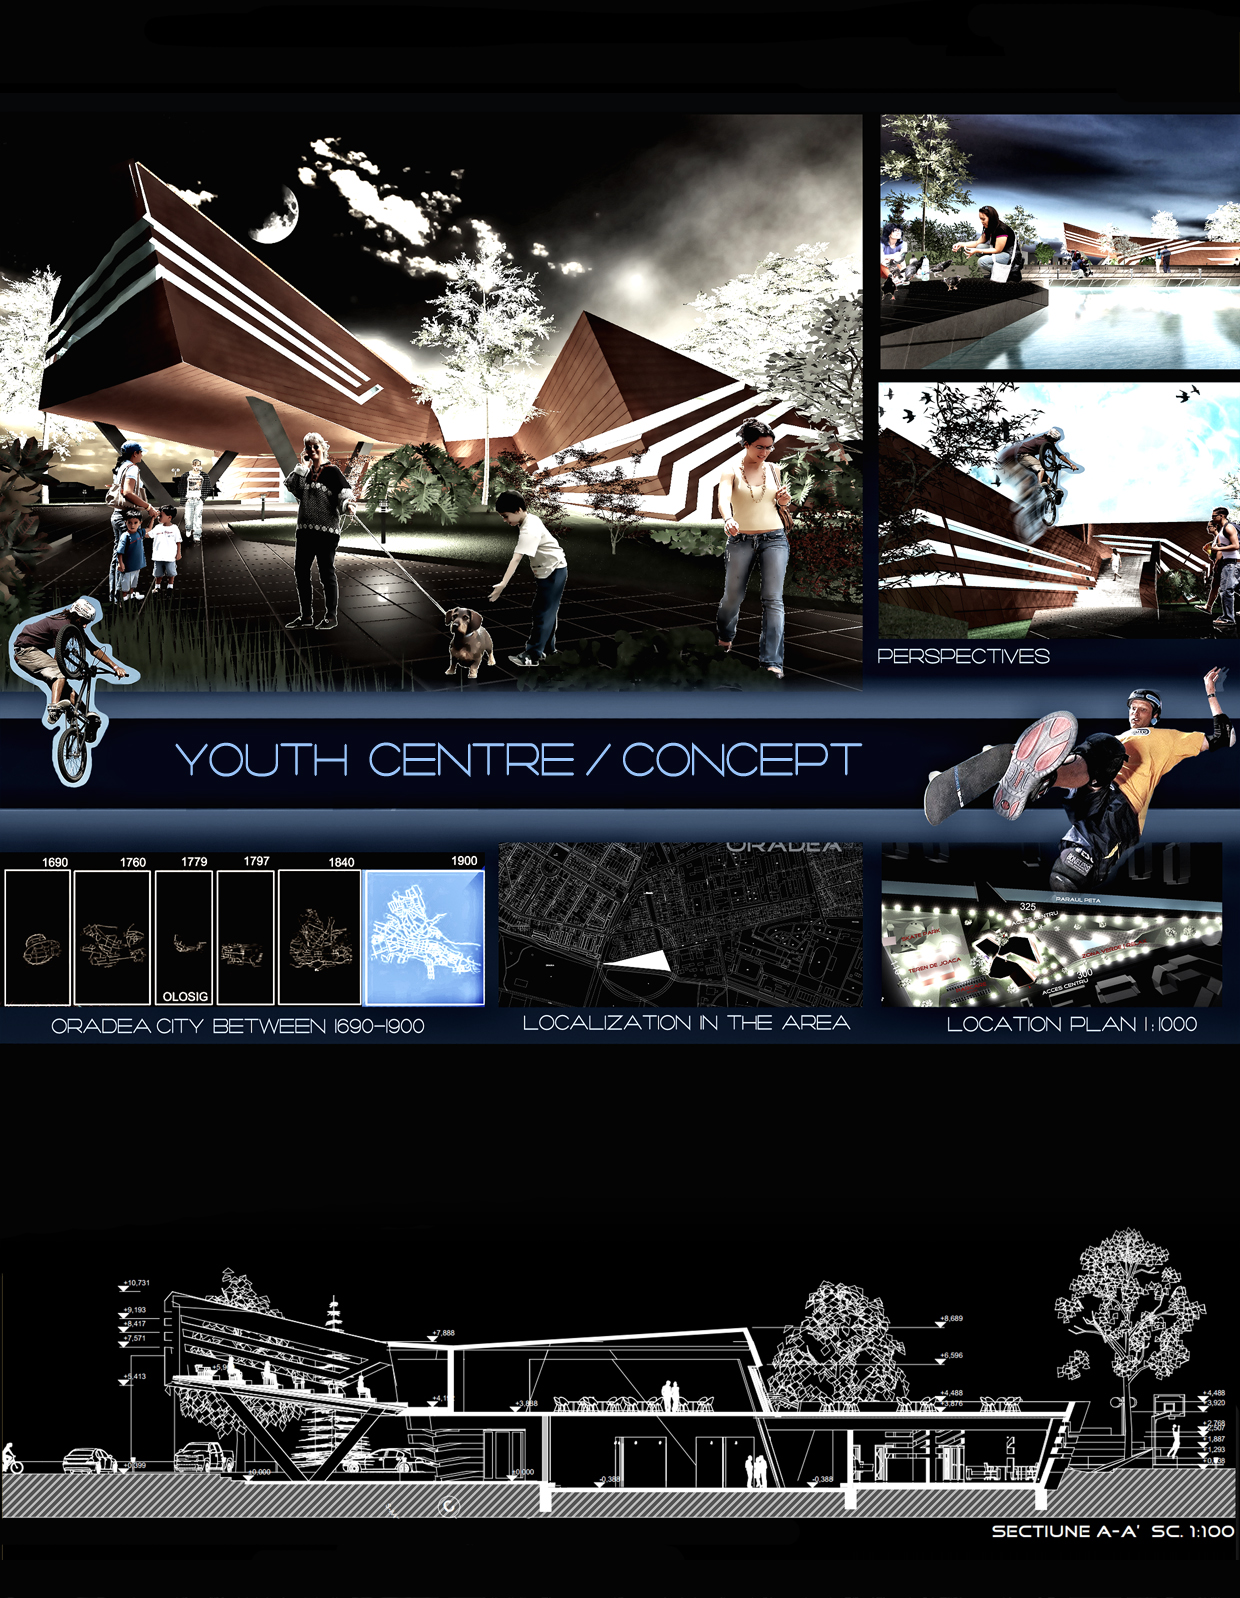 concept of youth